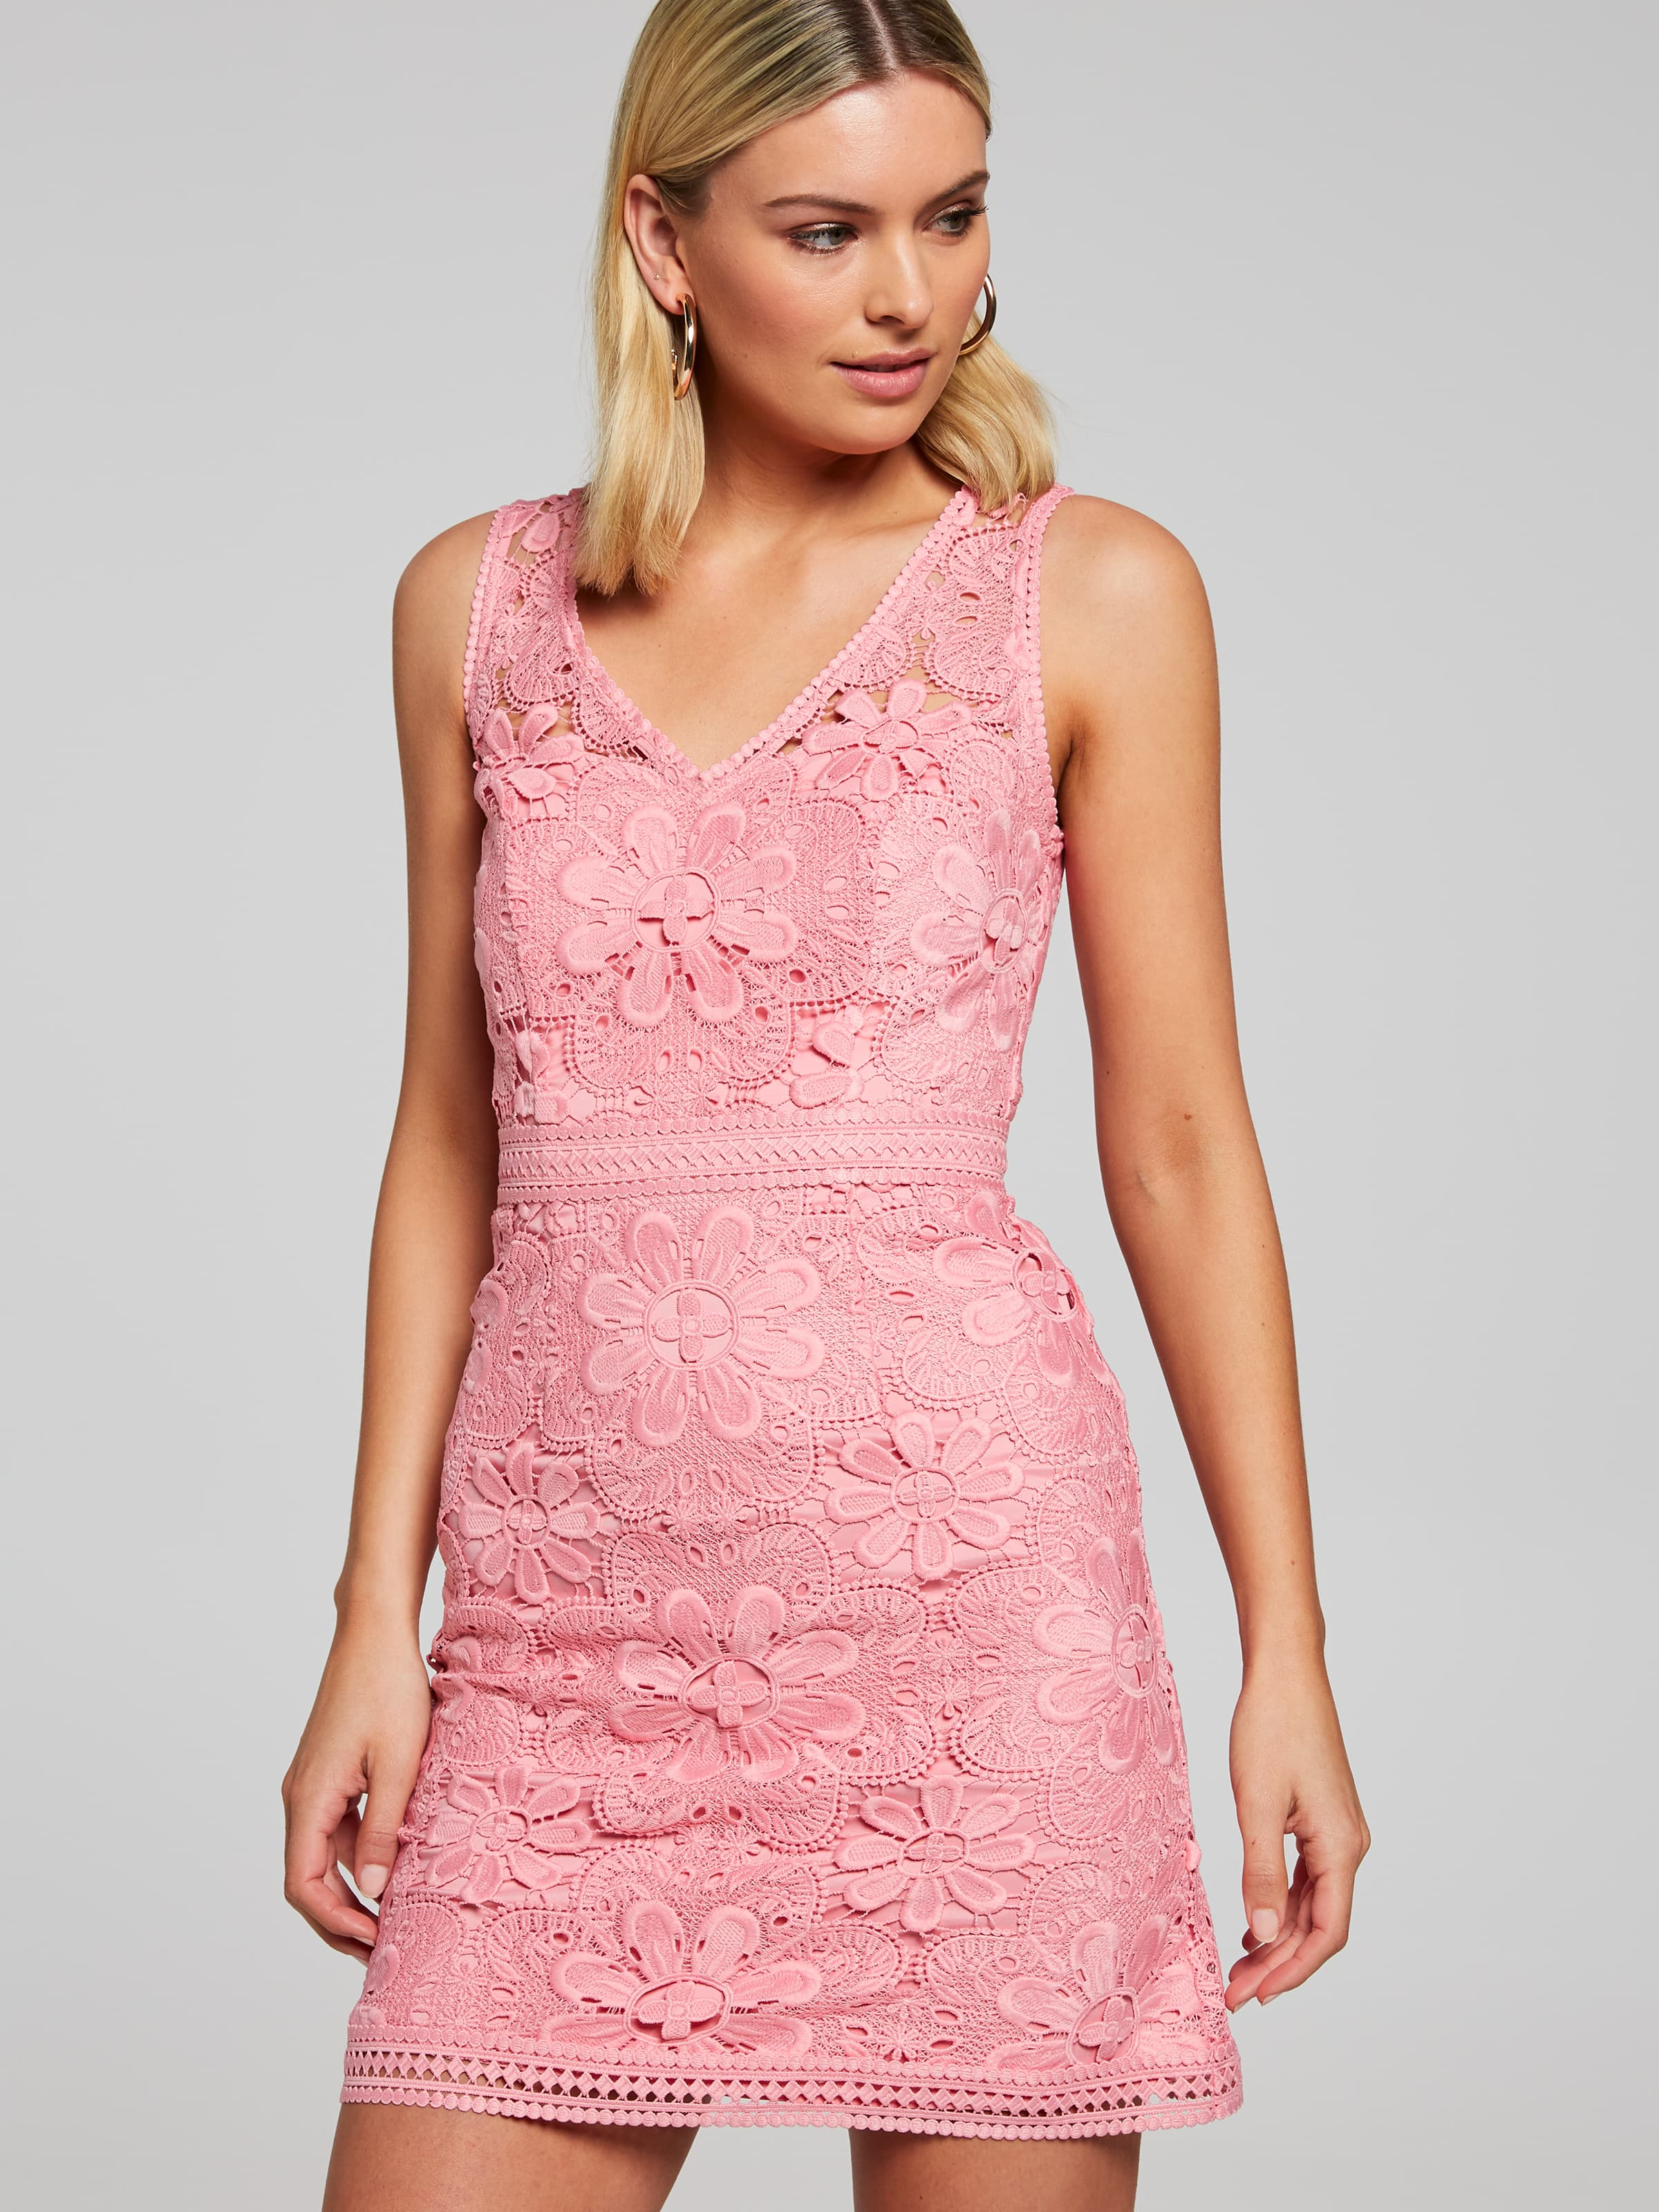 66425124b27 Image for Ariel Lace Mini Dress from Portmans Online ...